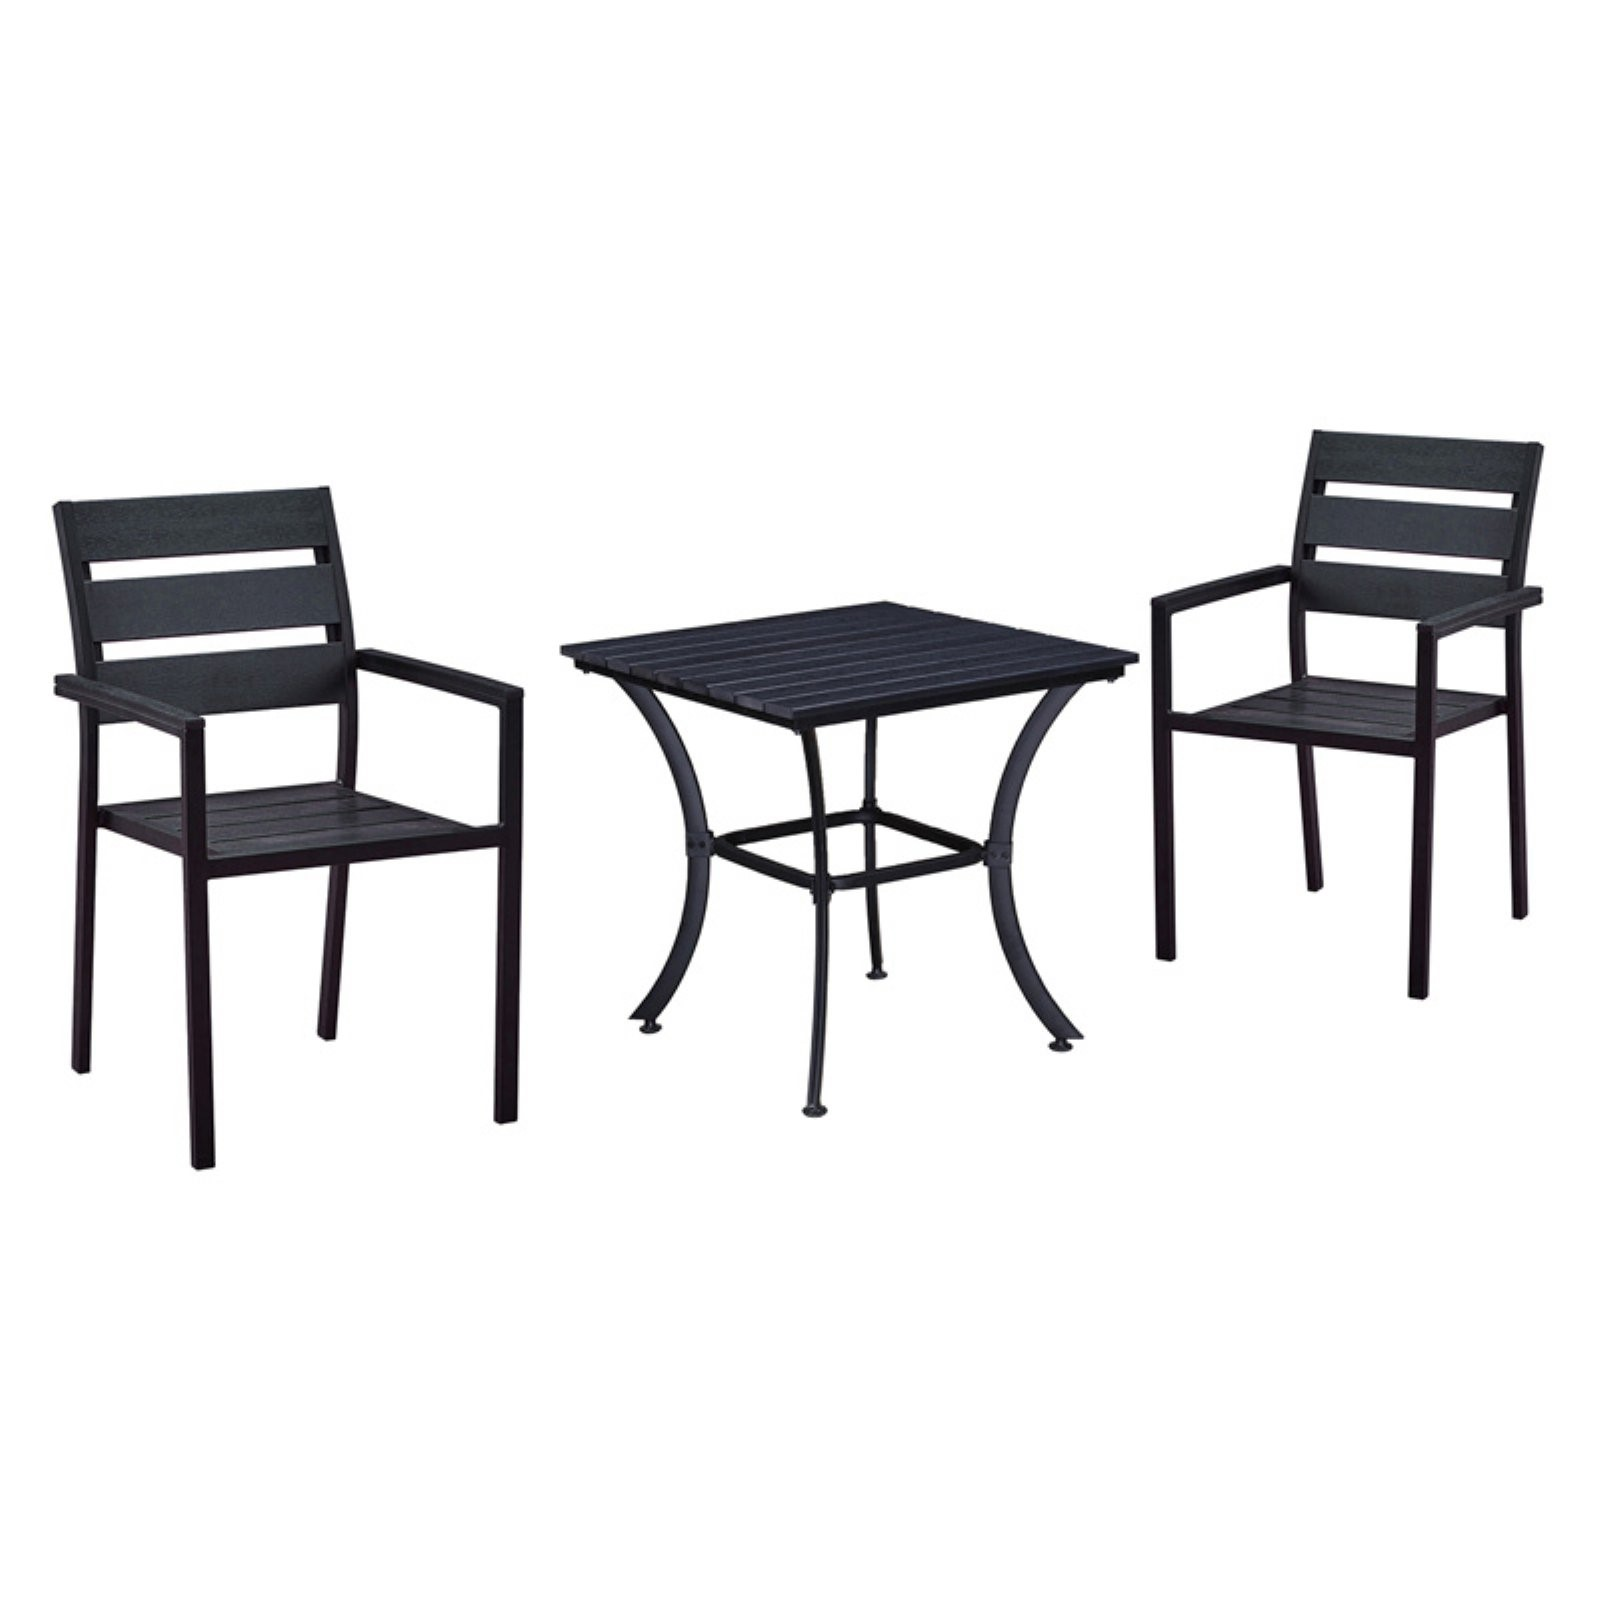 Oakland Living Slat Back Stackable Indoor/Outdoor Square Bistro Set